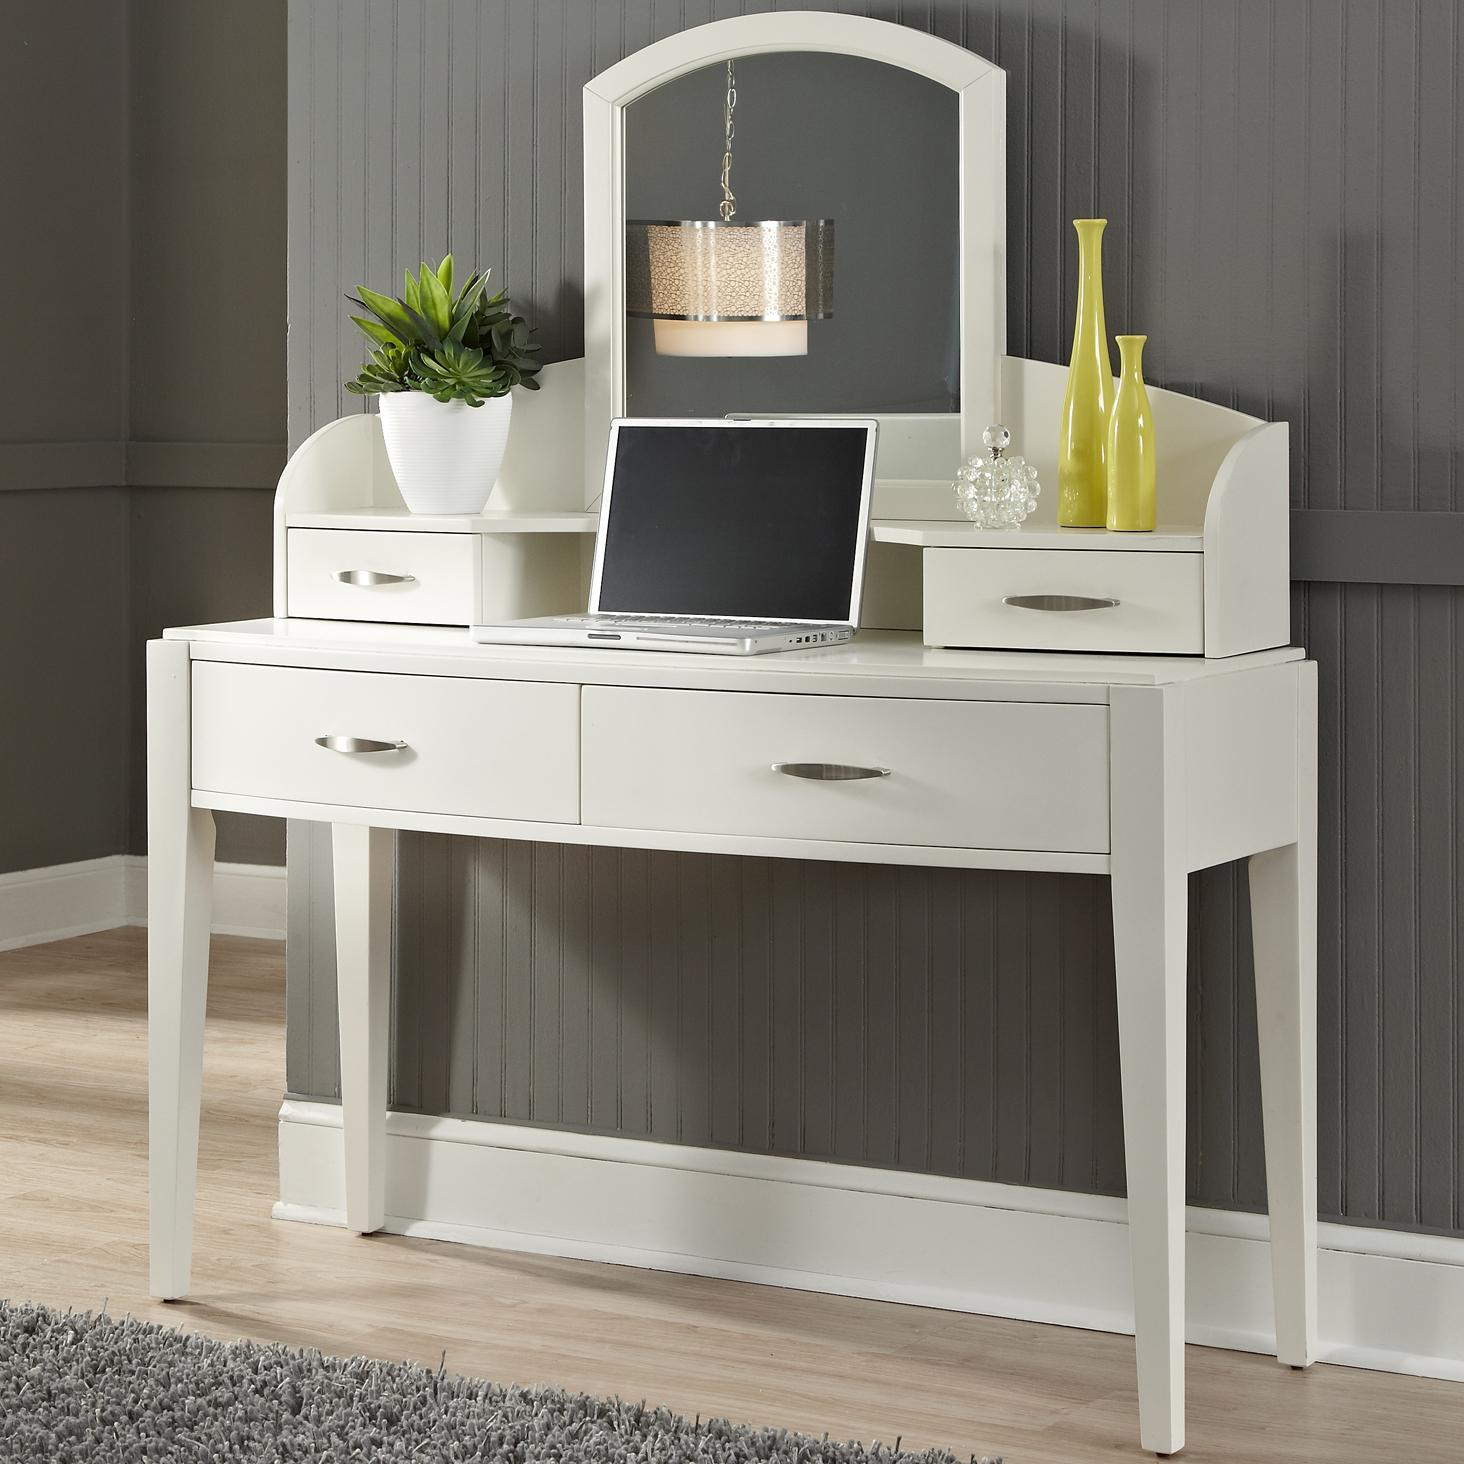 Vanity With 4 Drawers And Mirror By Liberty Furniture Wolf And Gardiner Wolf Furniture